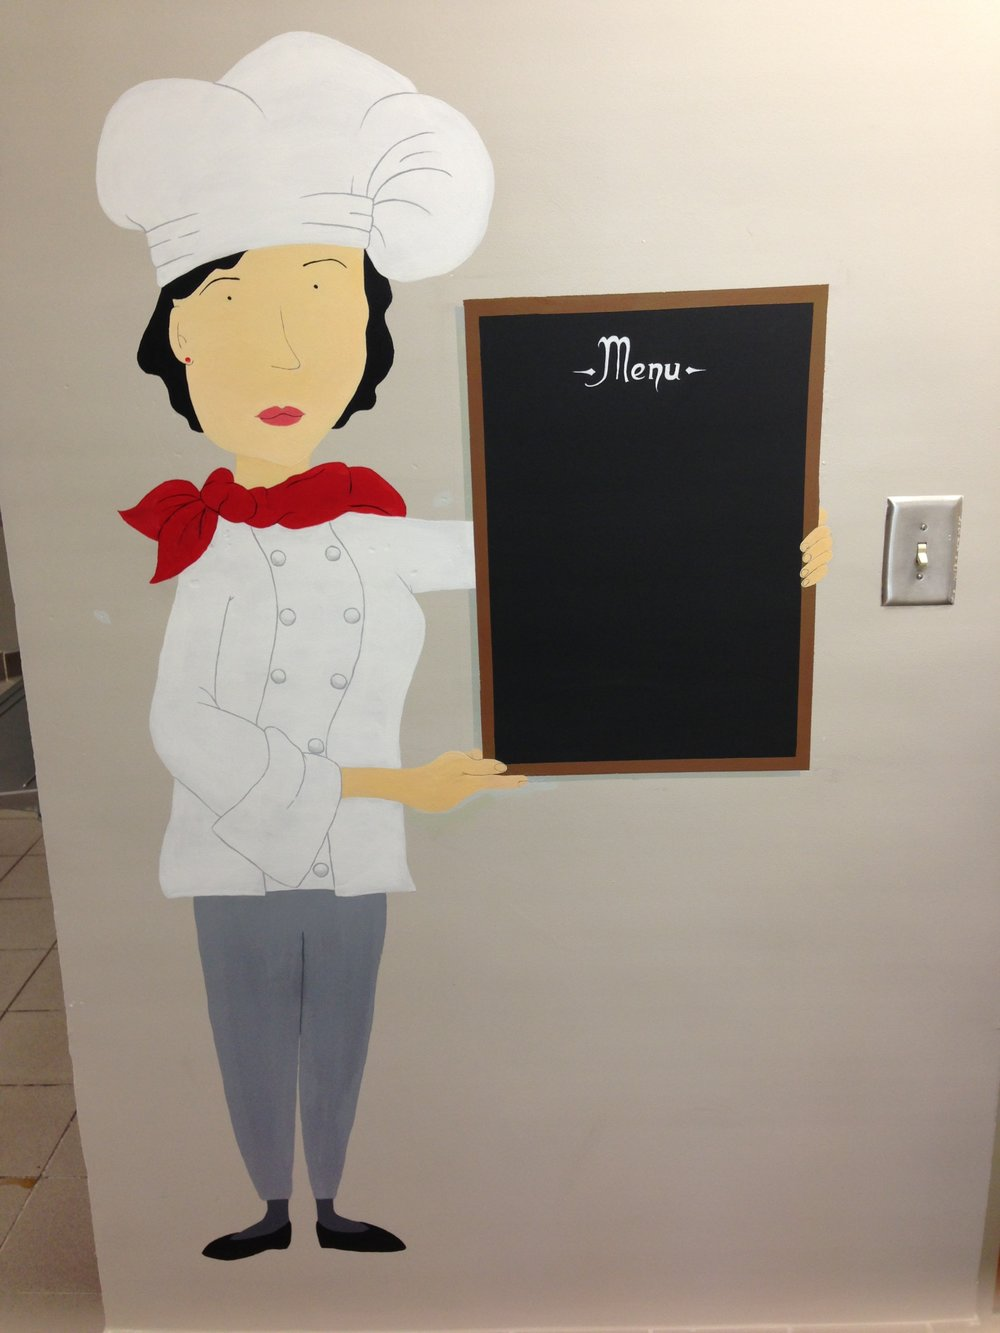 stylized menu chef for BRMS cafeteria mural